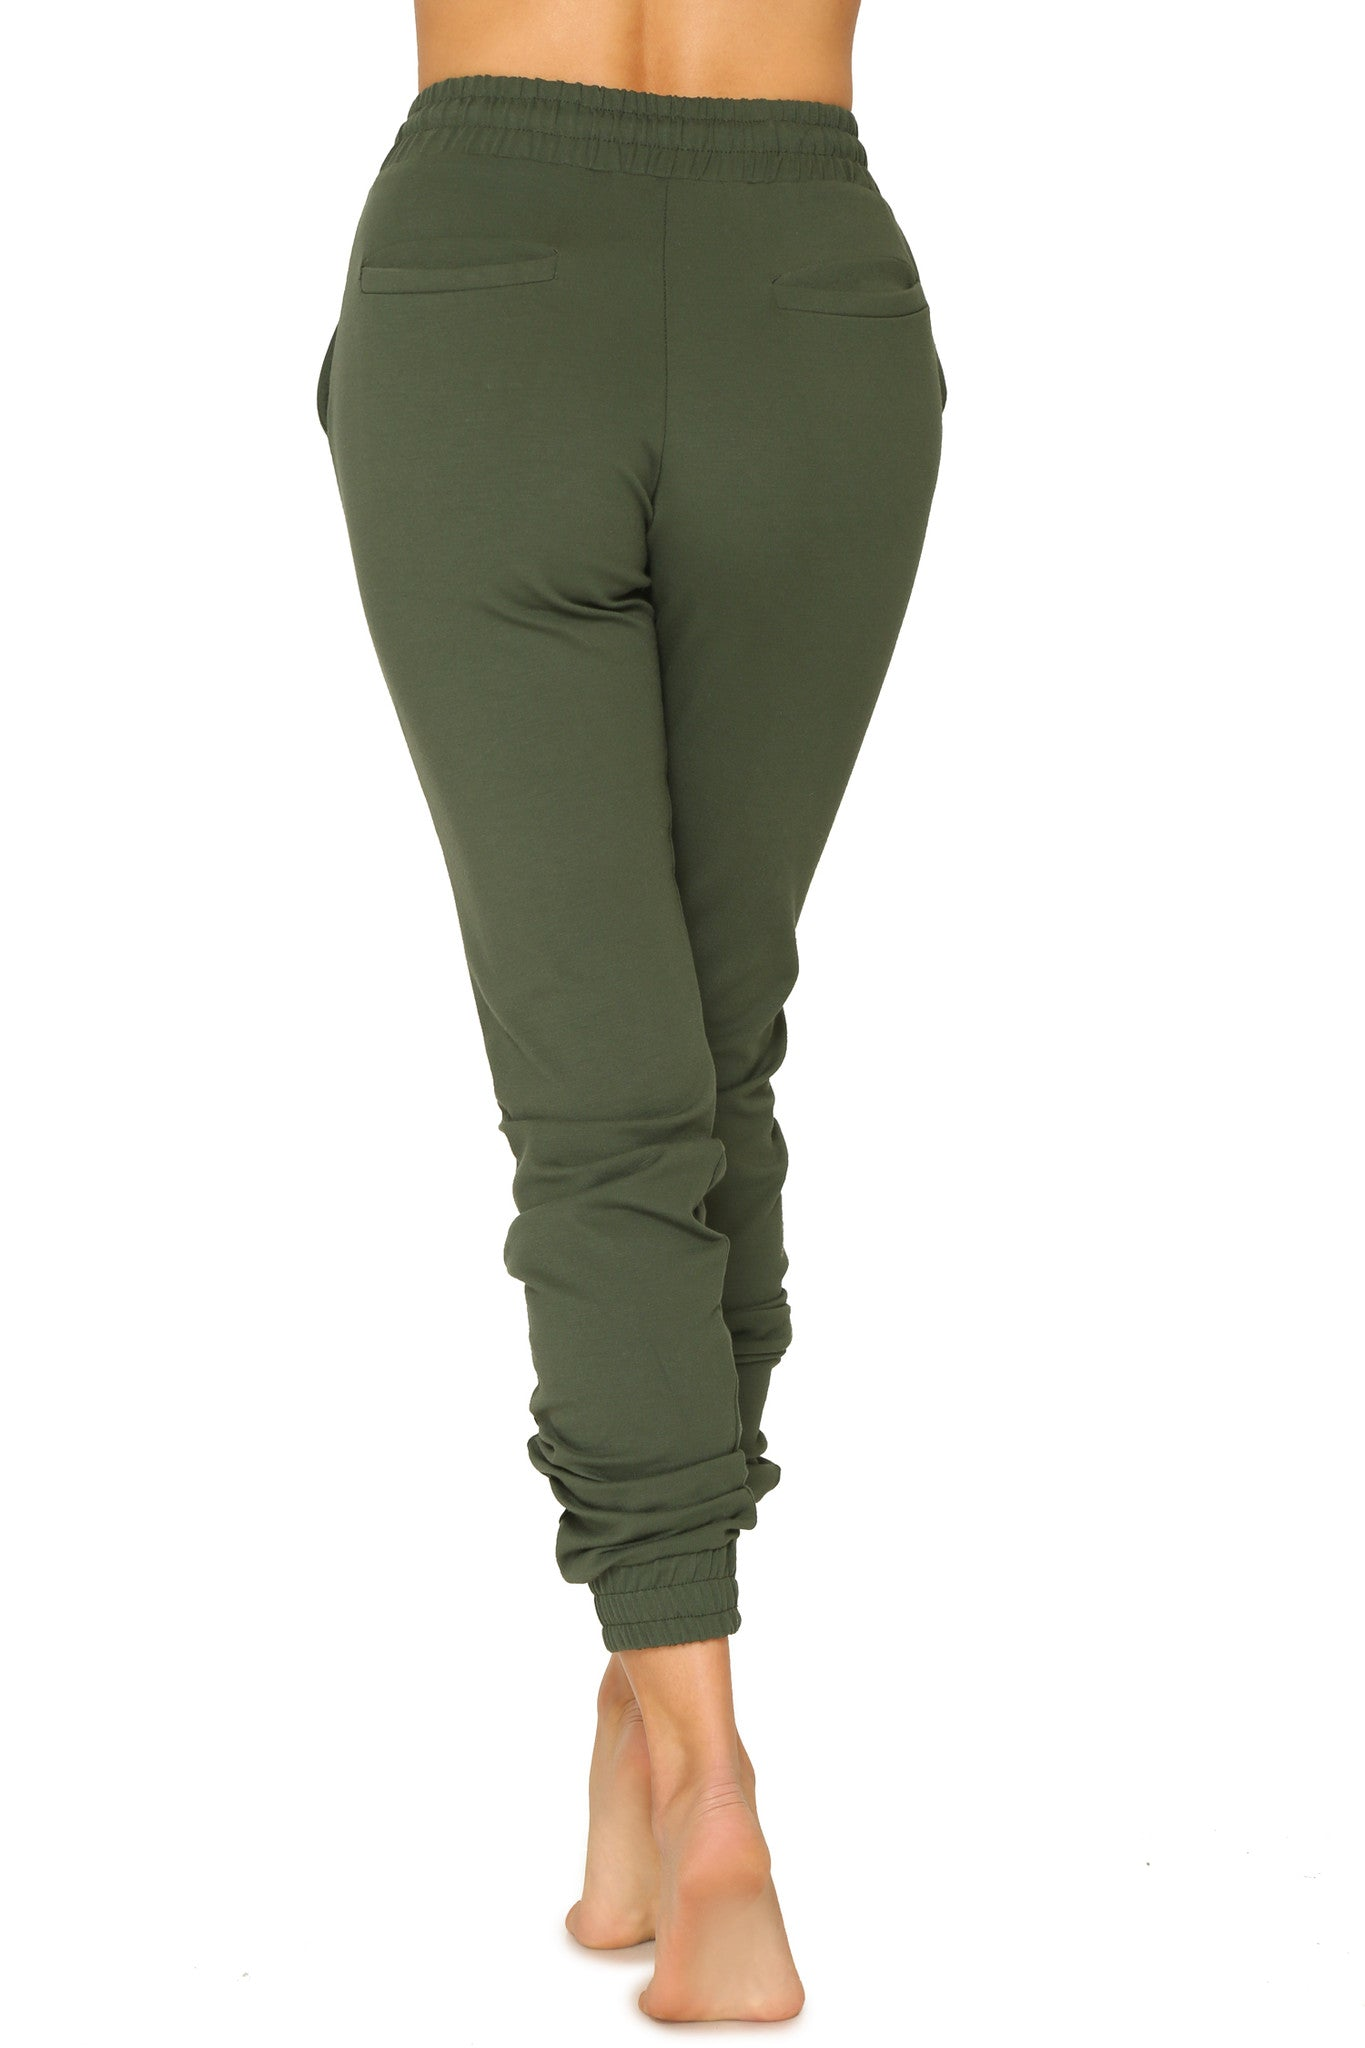 TAWNY SWEAT PANTS - Glam Envy - 6